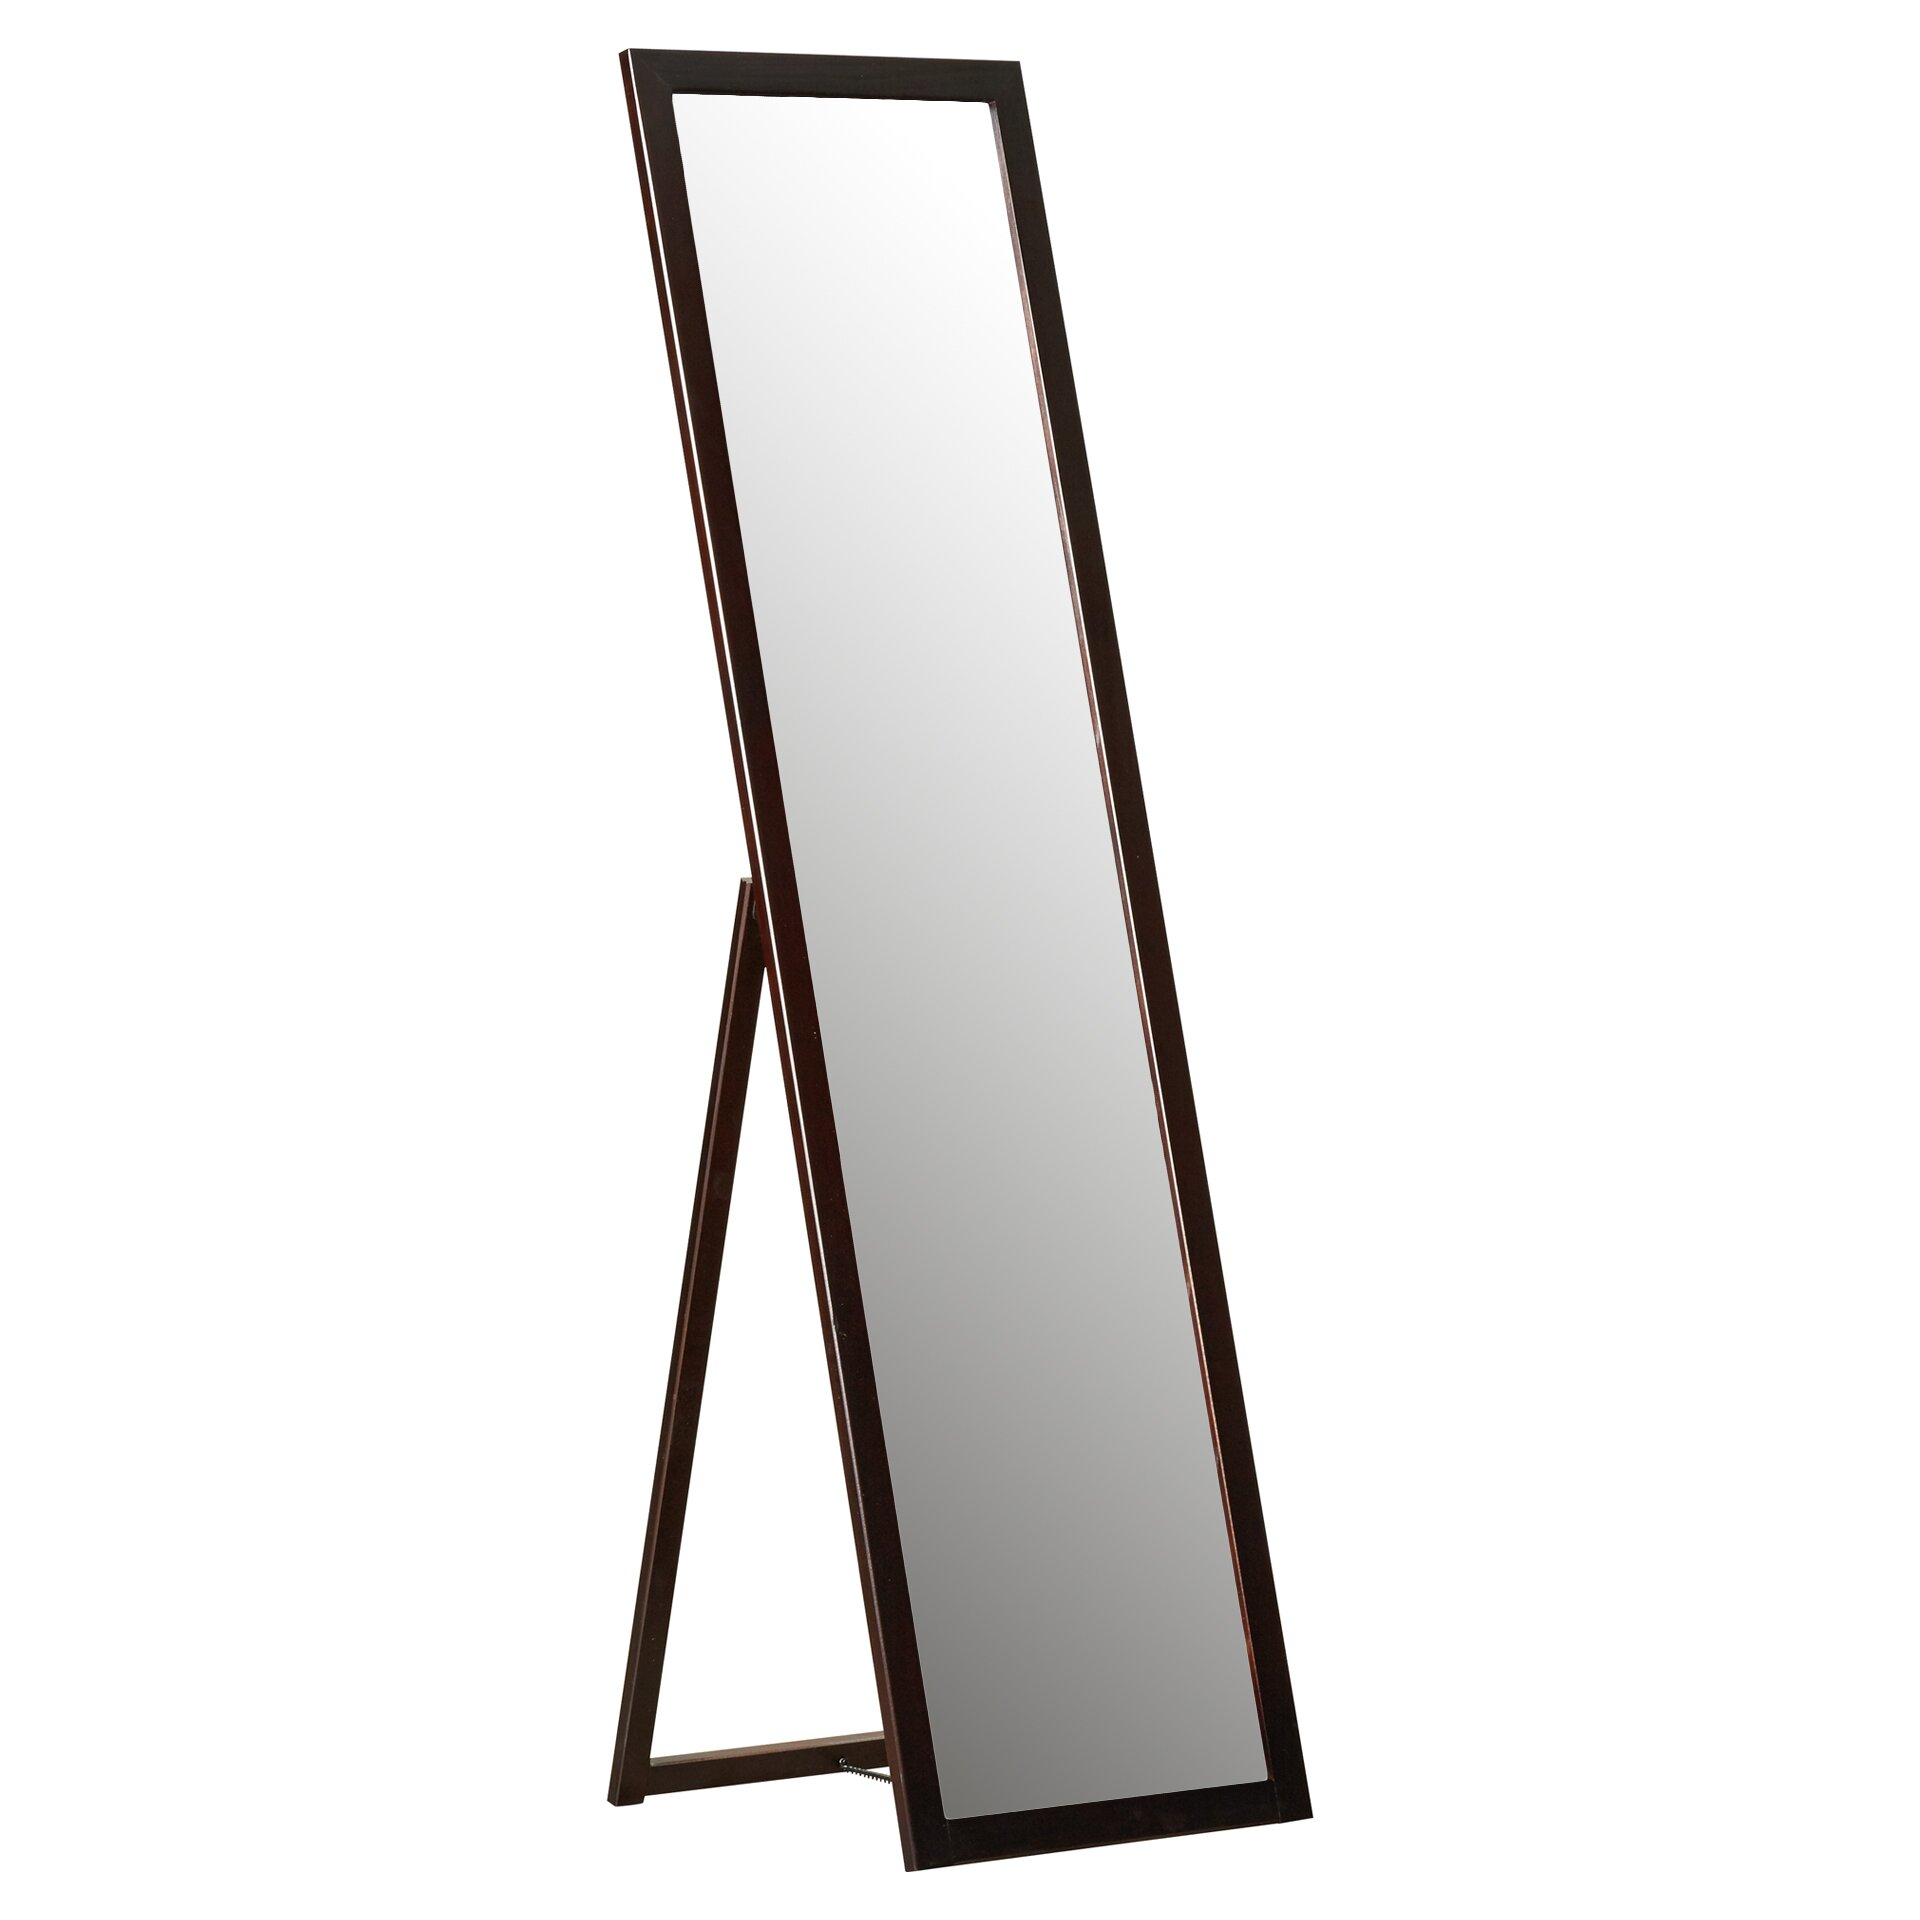 Varick gallery galeton full length stand mirror reviews for Standing glass mirror